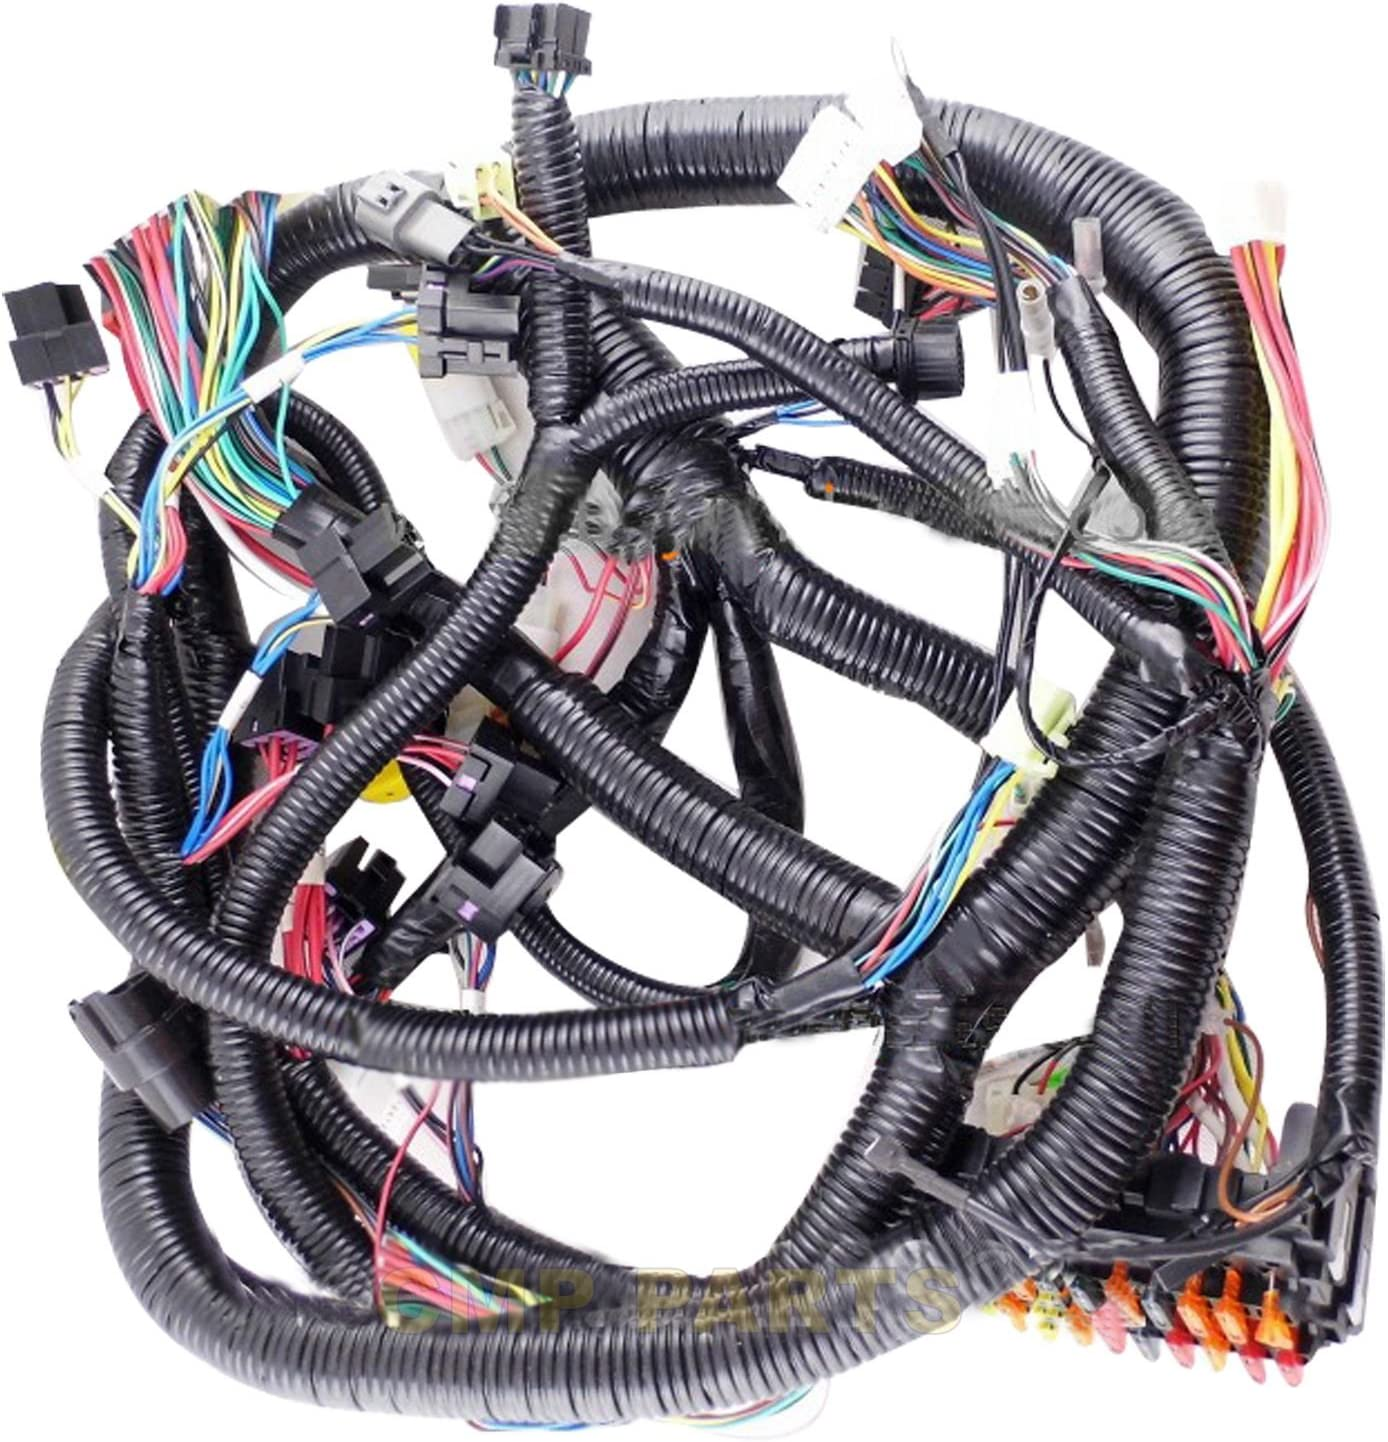 Max 70% OFF 0005997 4681836 Outer External Wiring SINOCMP - Harness Electric 2021